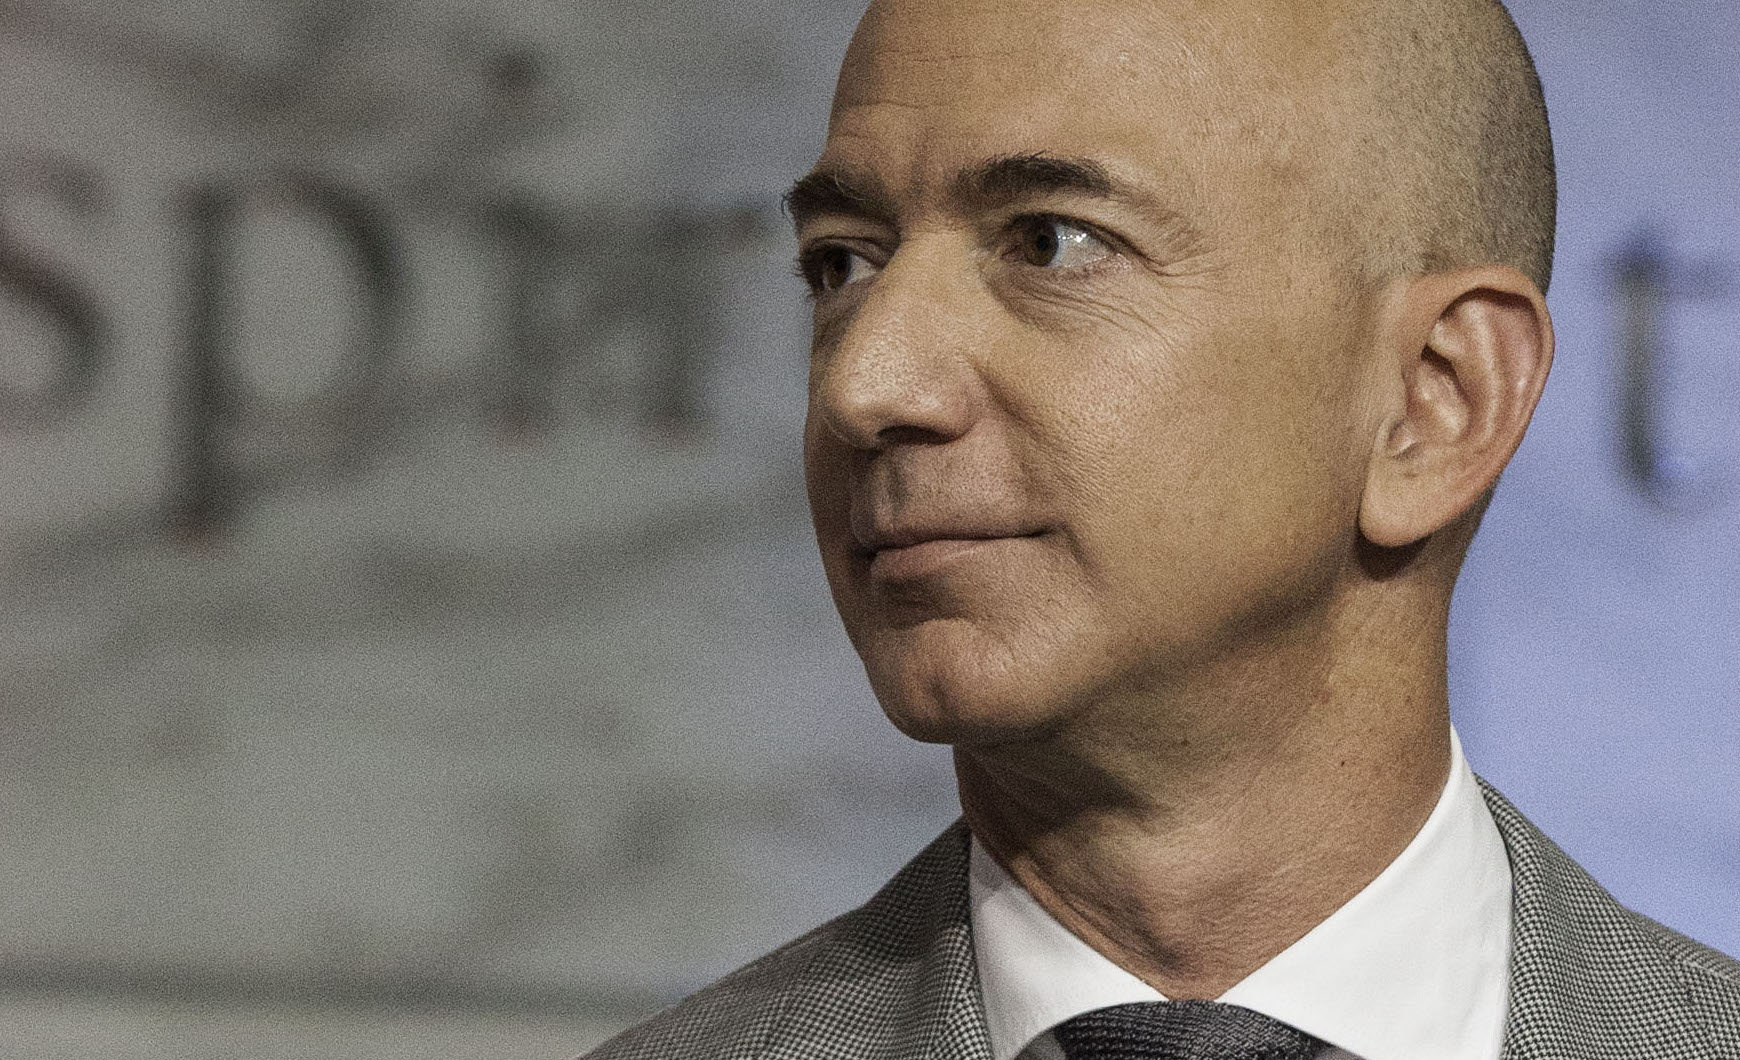 The Question Jeff Bezos Asked Himself Before Launching Amazon